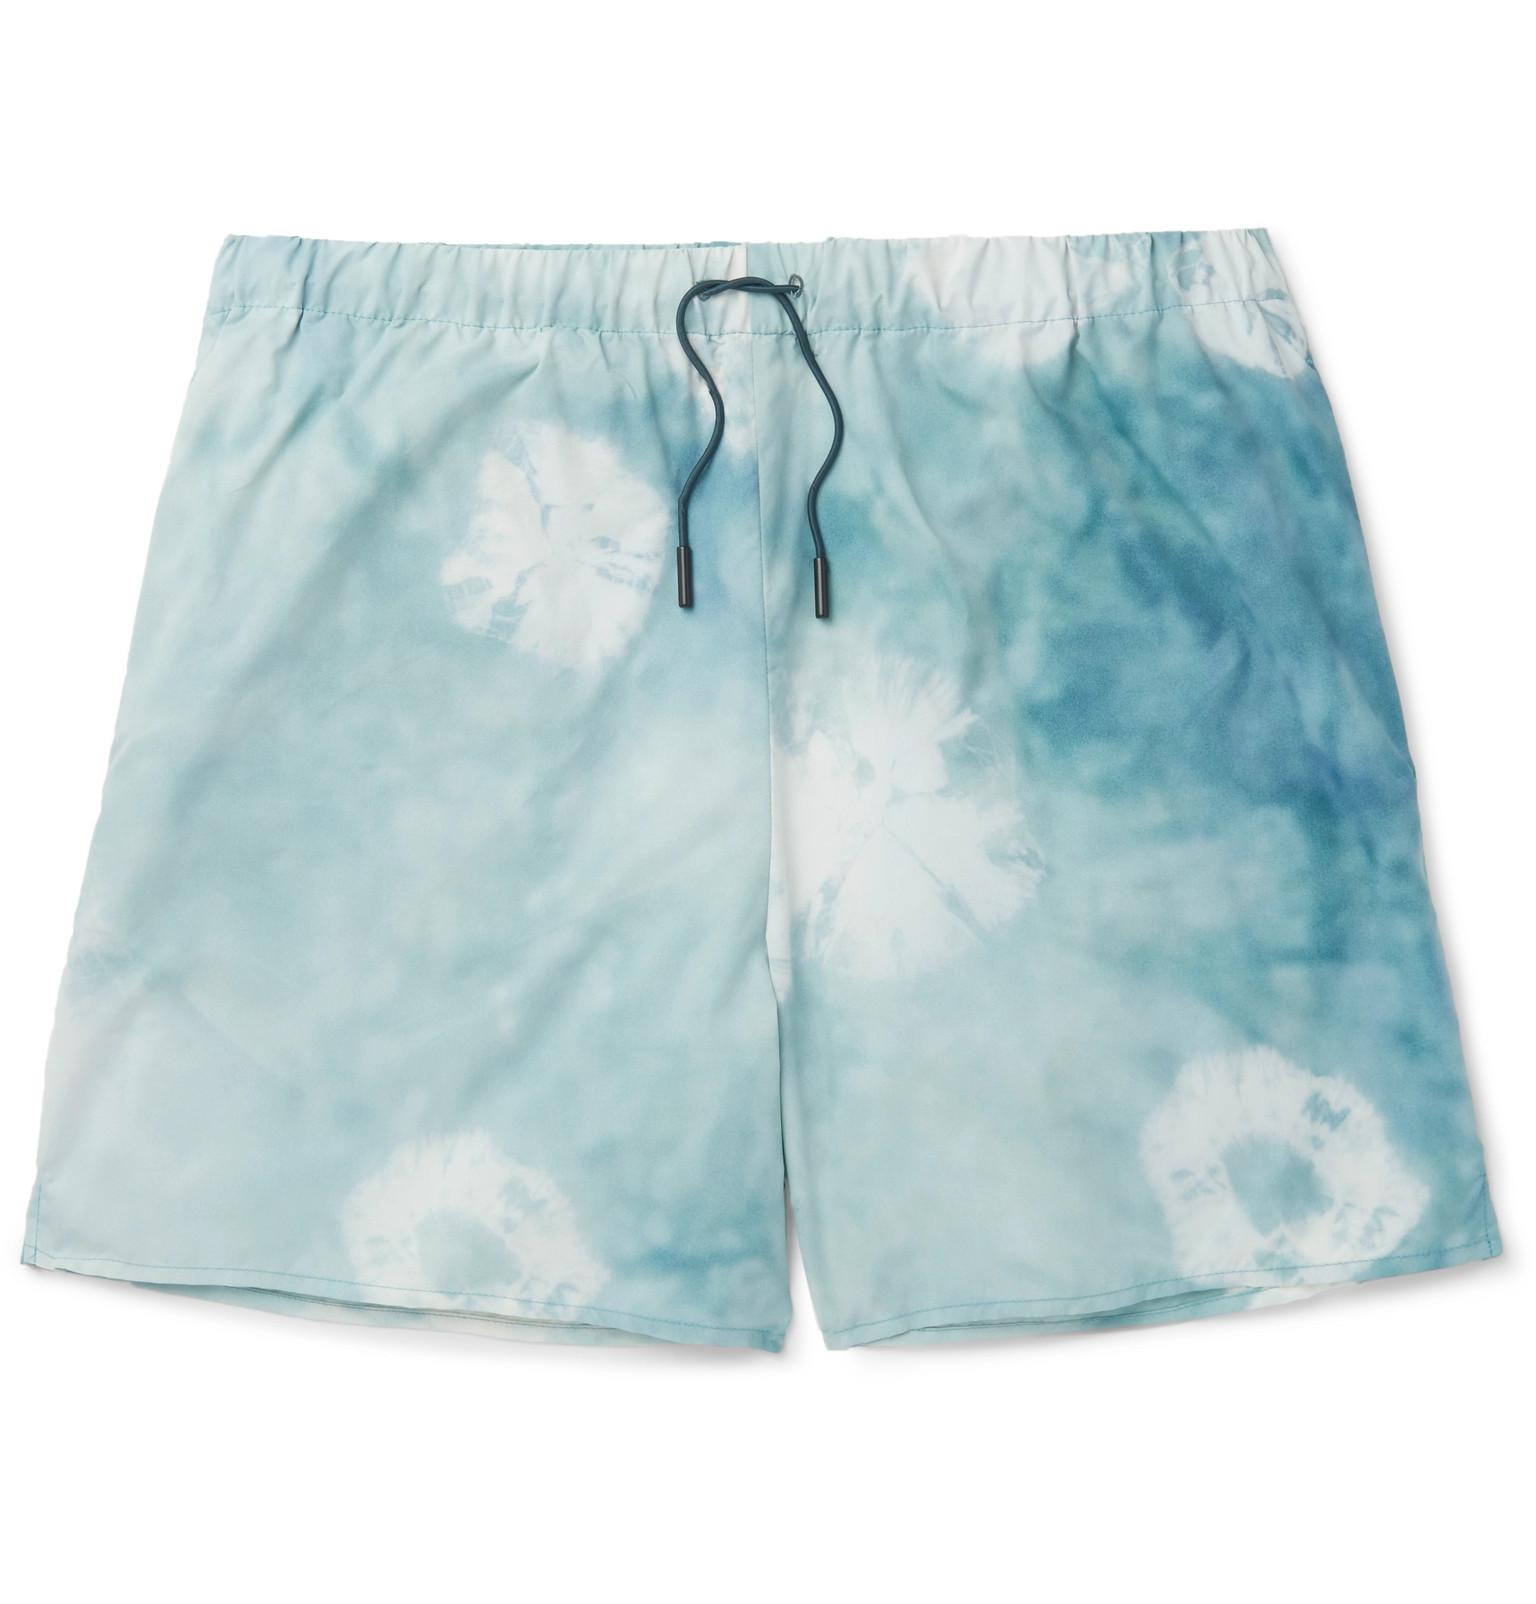 Perry D Mid-length Printed Shell Swim Shorts Acne Studios Cheap With Mastercard 208oqj